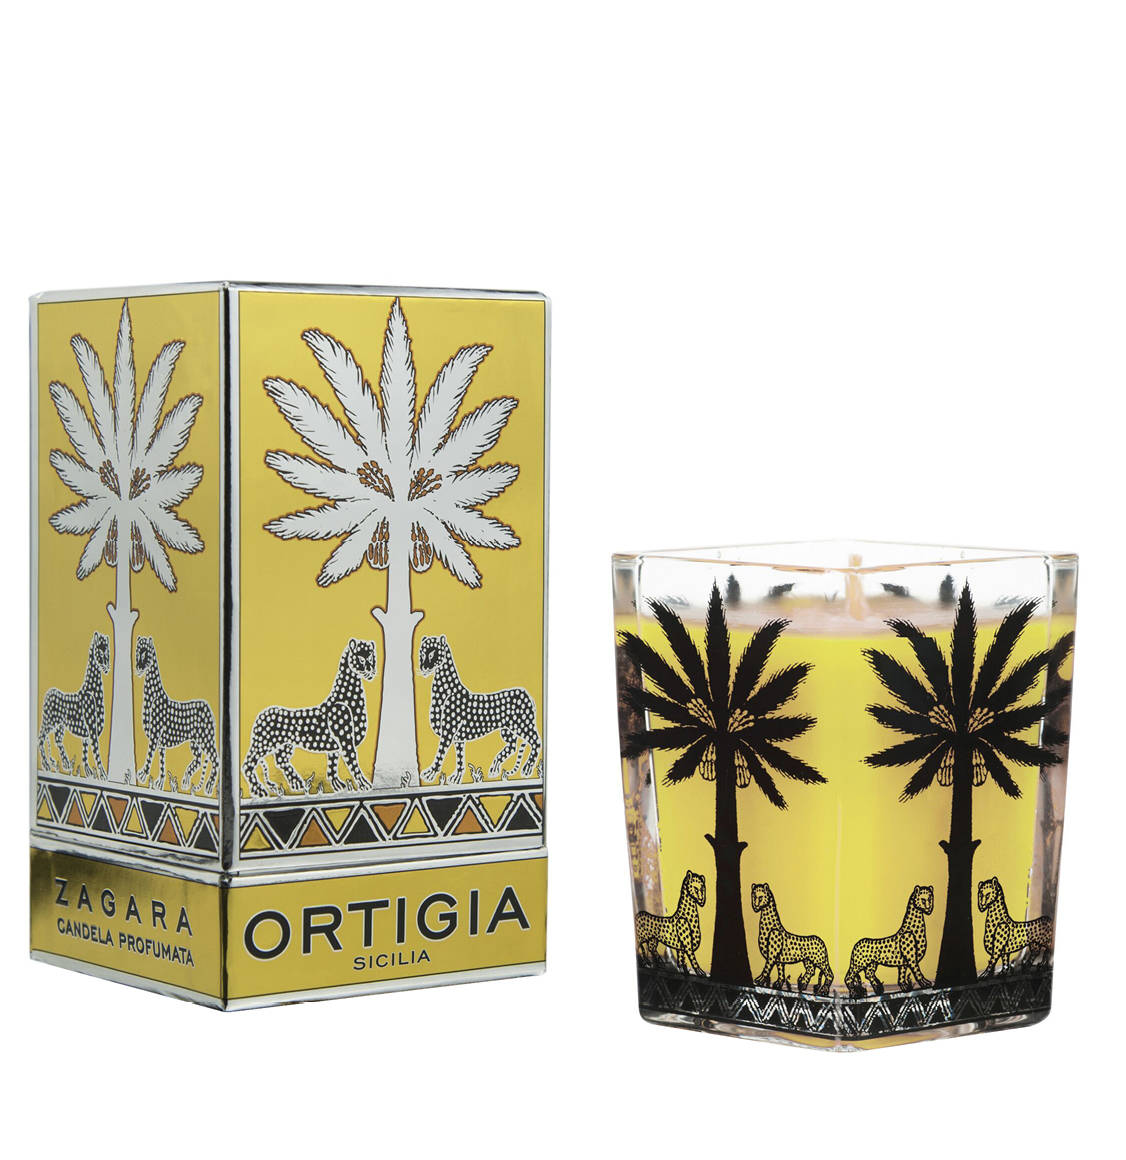 Ortigia Sicilia Orange Blossom Candle 170g